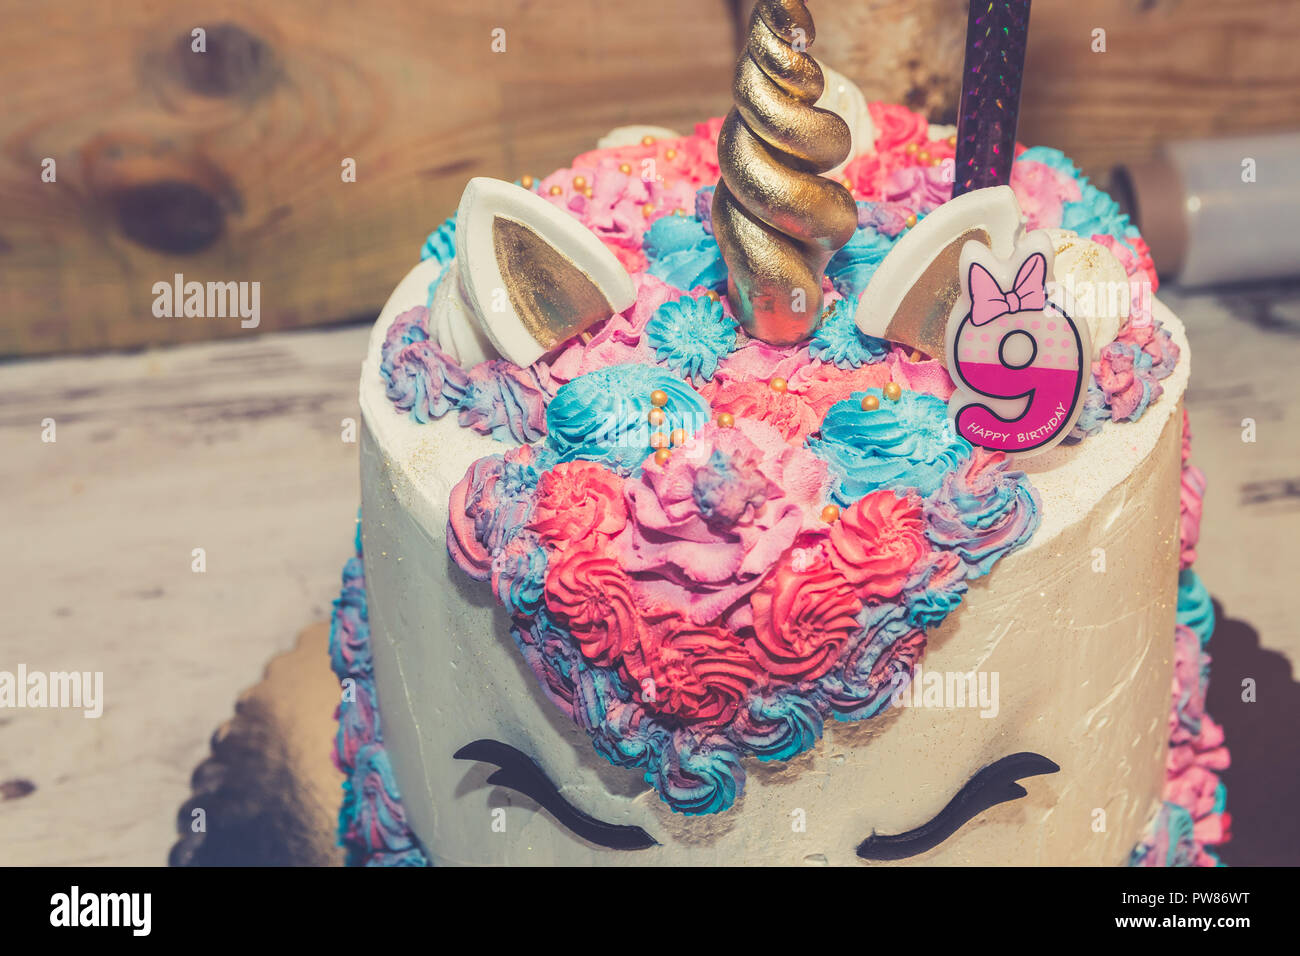 Unicorn Birthday Cake For Little Girls Decorated With Colorful Whipped Cream And Number Nine On The Top Close Up